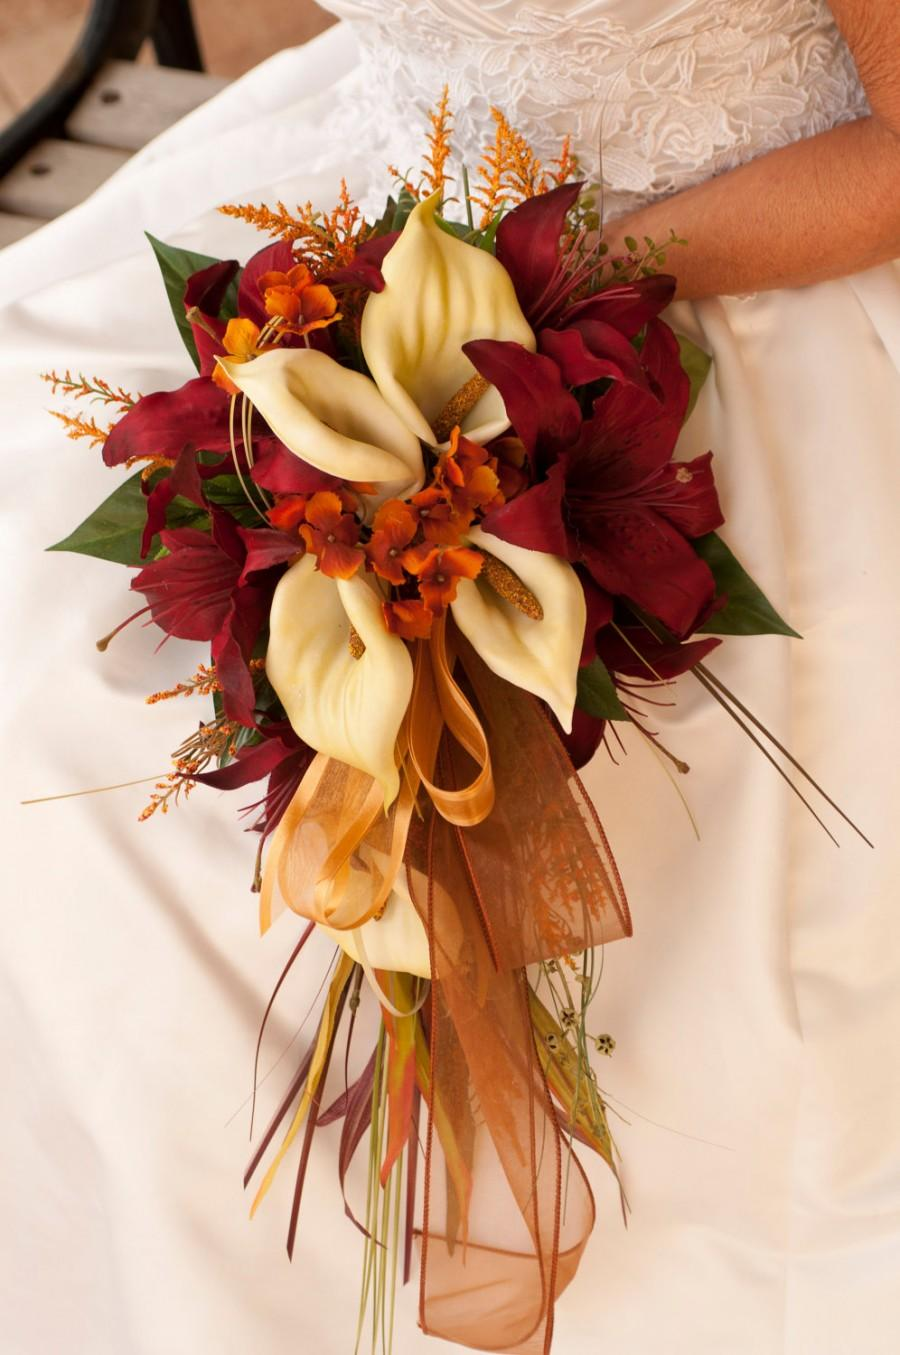 Bride Fall Wedding Bouquet Ivory Orange Red Rose And Calla Lily 20